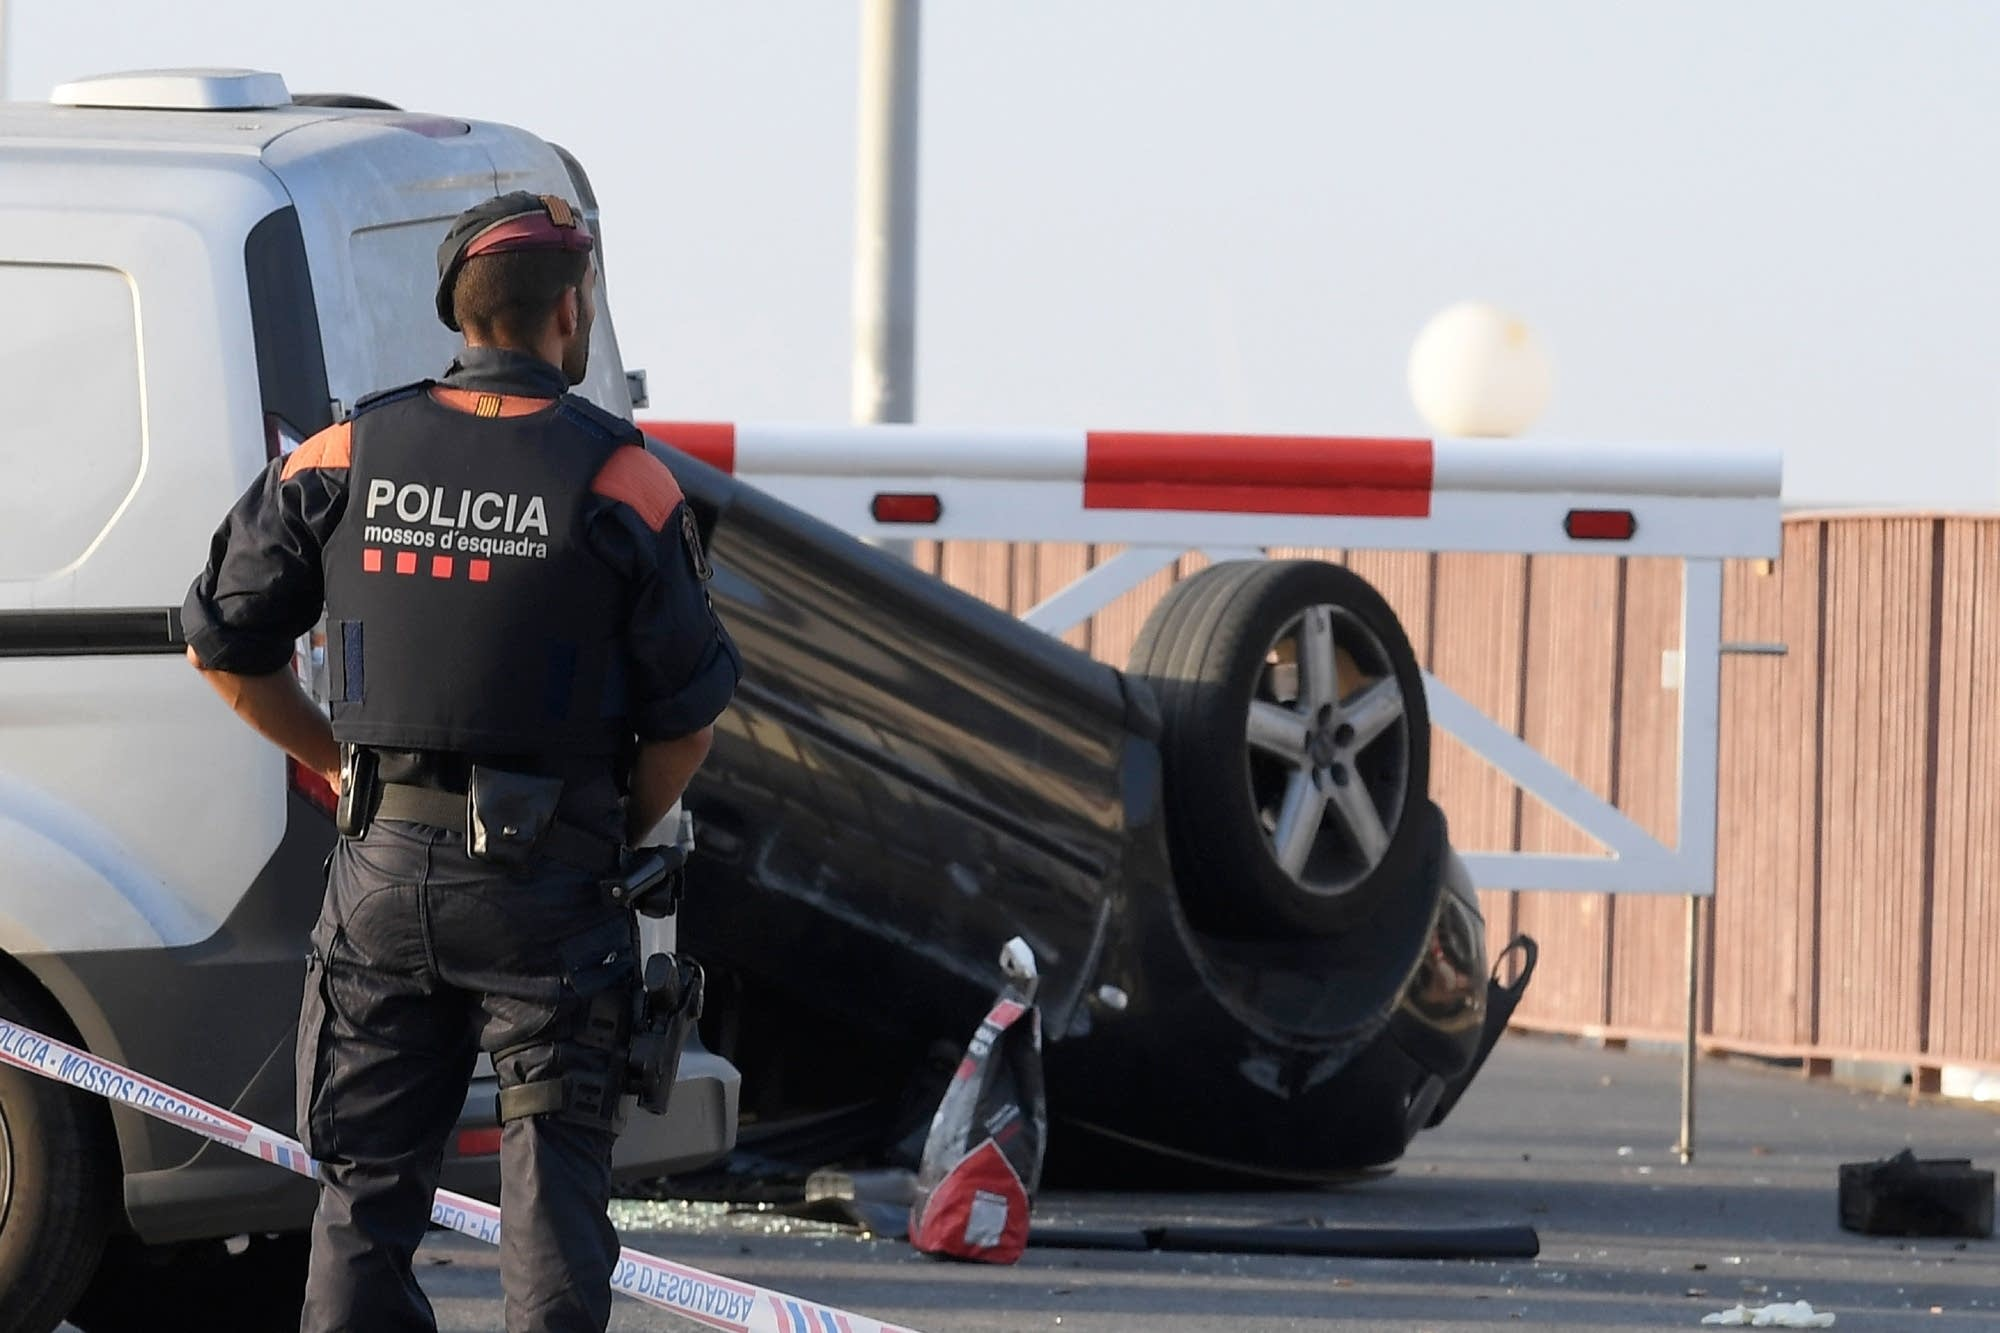 Police Removes Car Used By Attackers In Cambrils